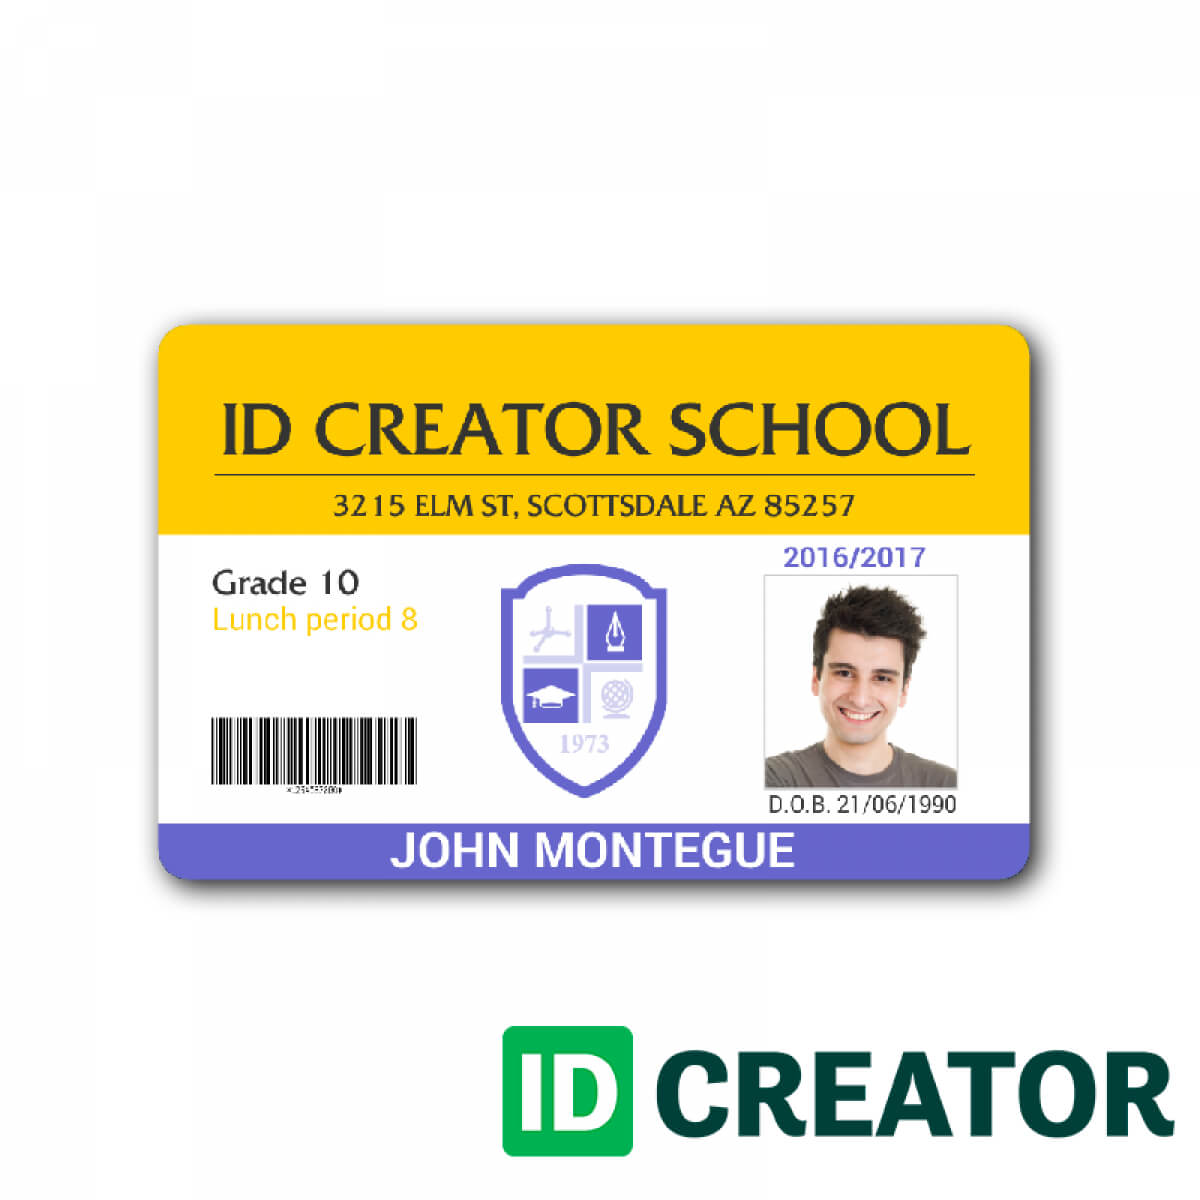 001 School Id Card Template Stupendous Ideas Free Within Teacher Id Card Template